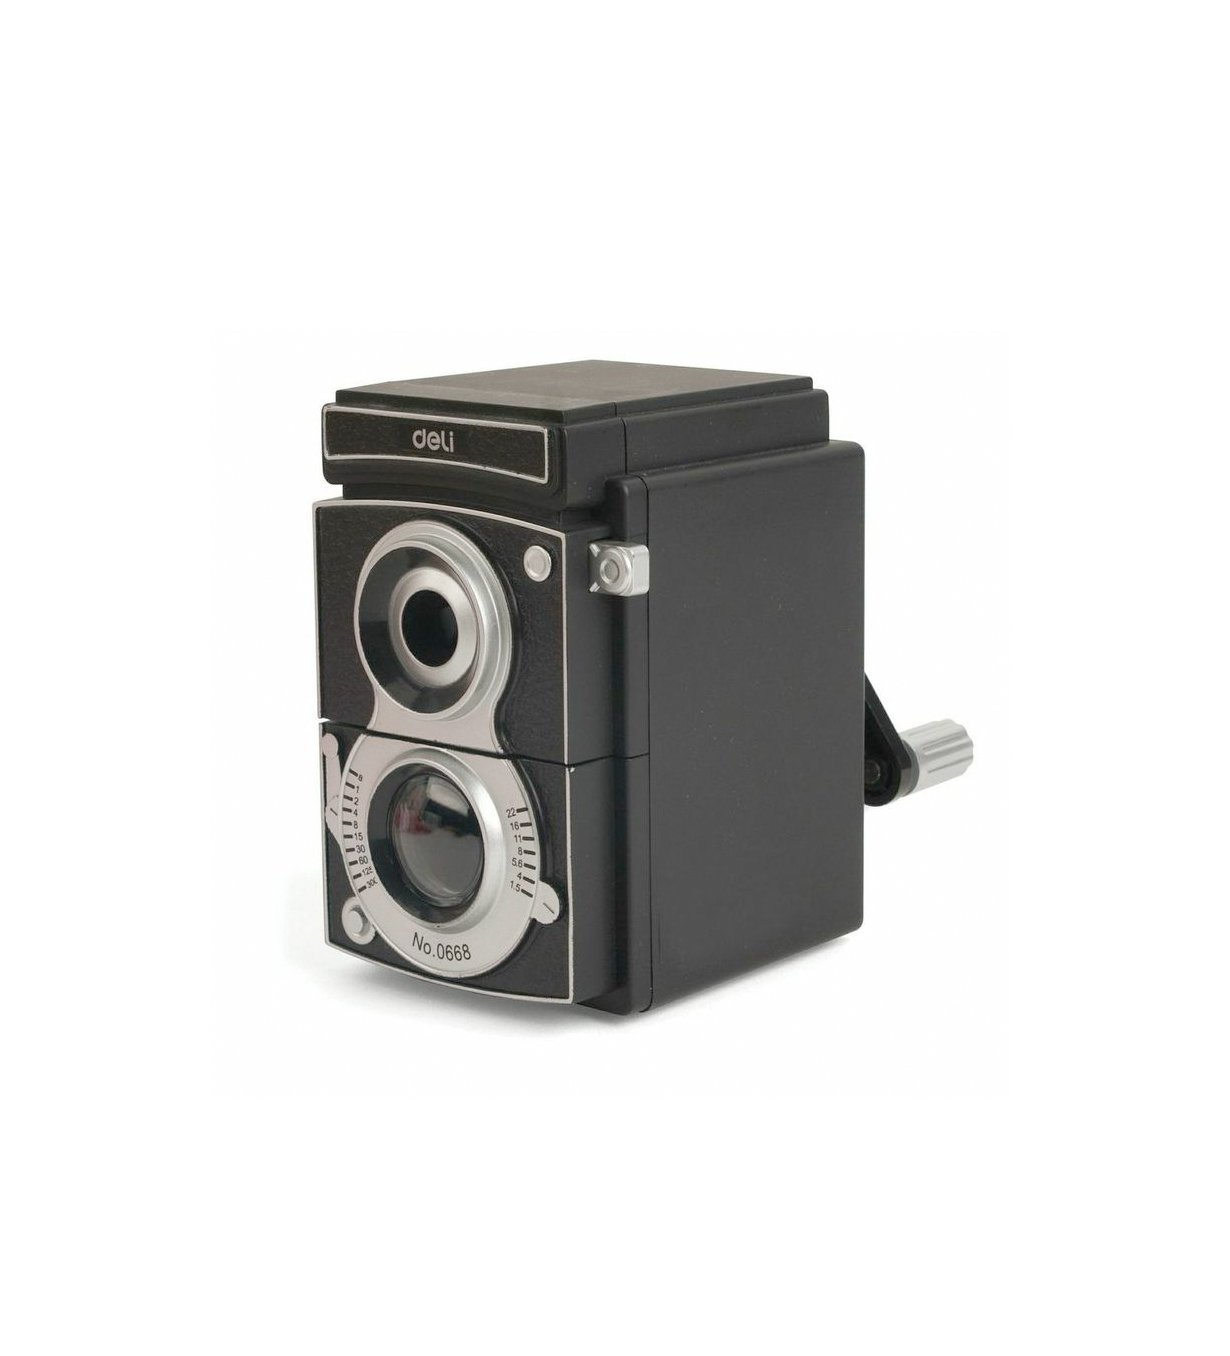 Buy Camera Pencil Sharpener